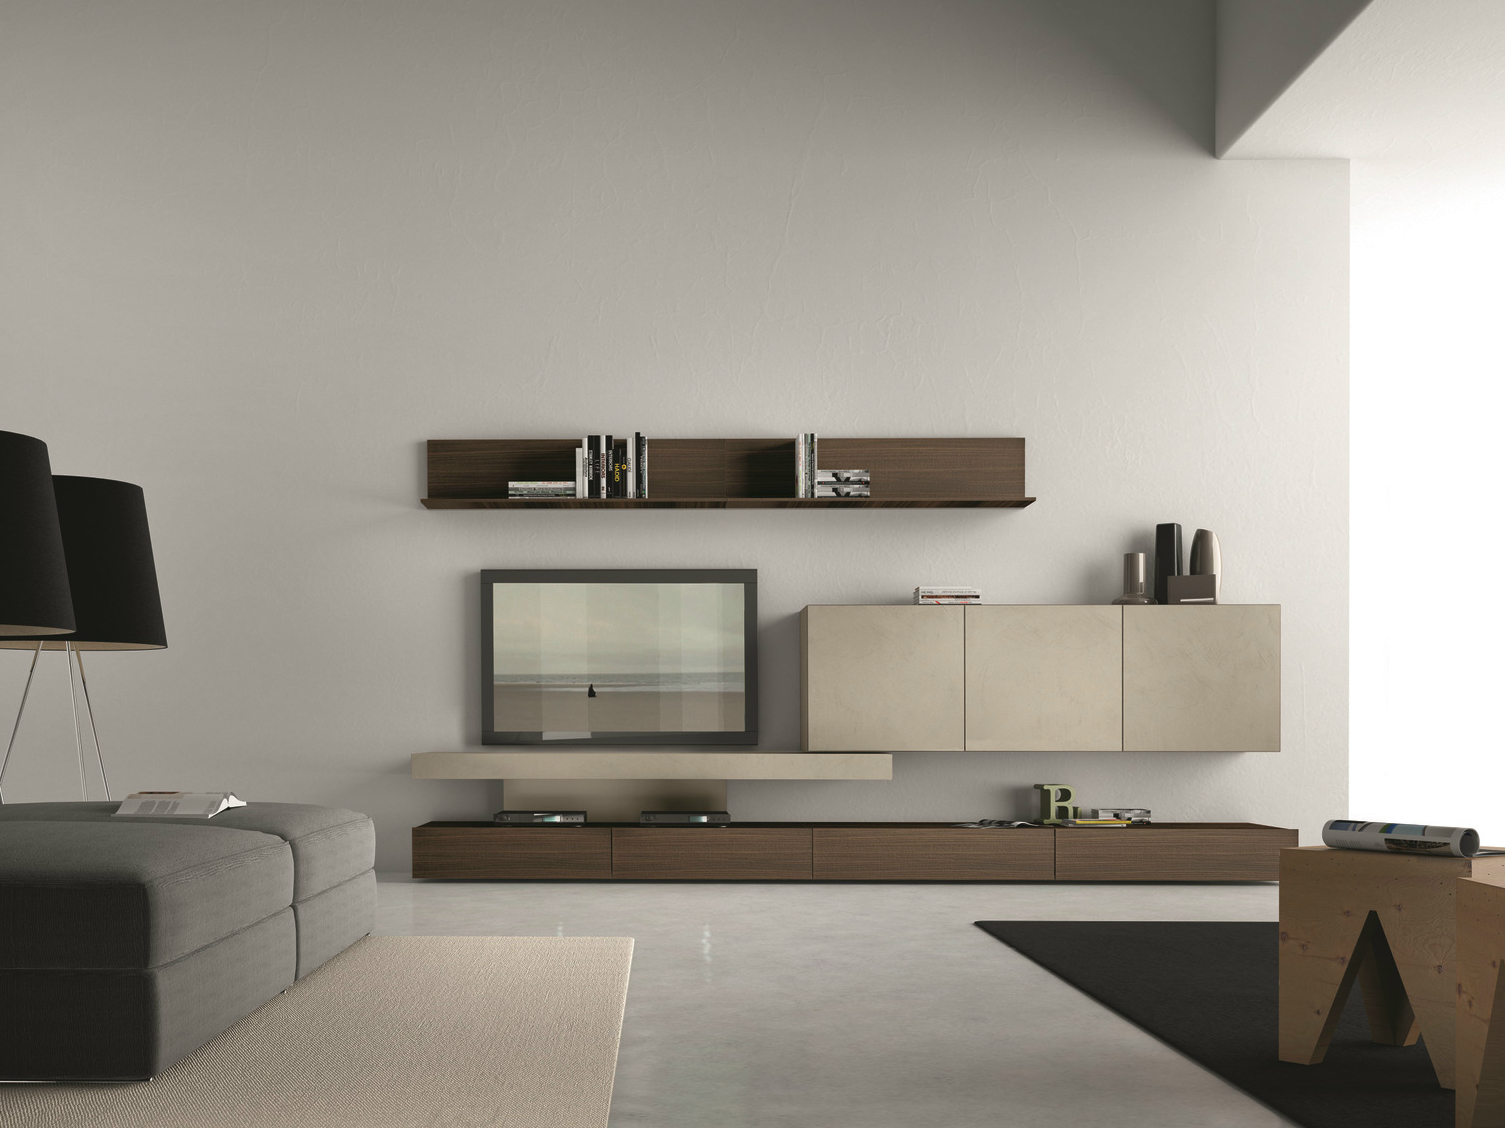 Sectional wall mounted tv wall system i modulart 282 by presotto industrie mobili design - Mobili presotto ...